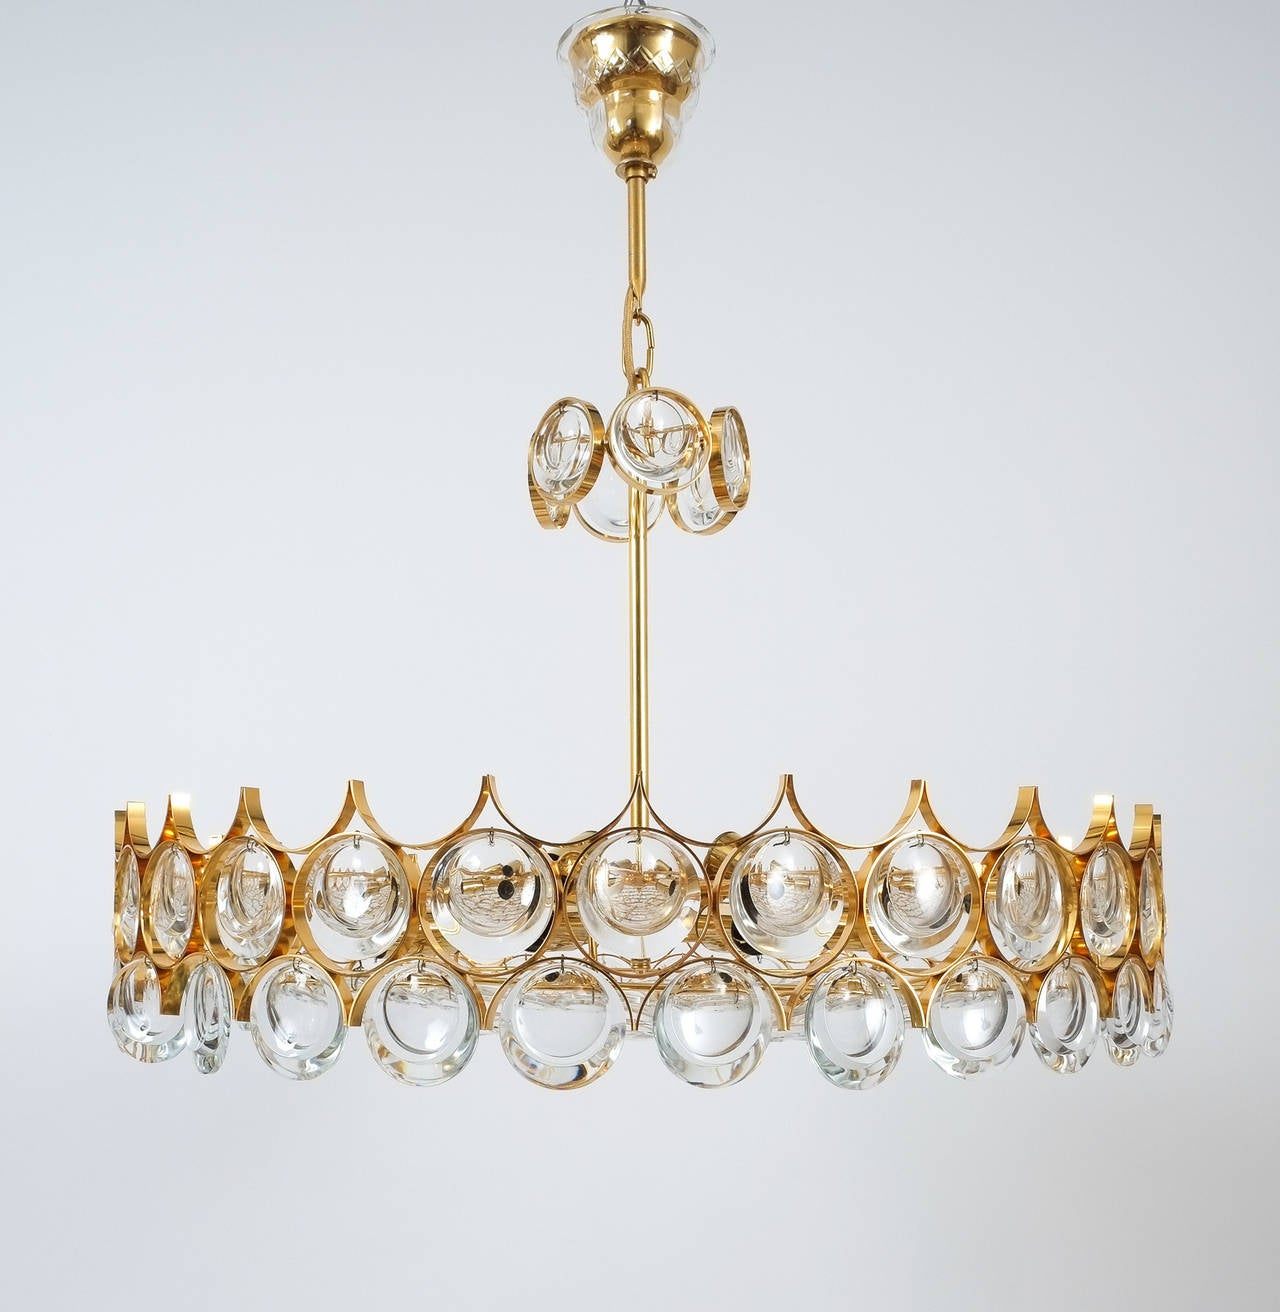 Palwa Gold Brass and Glass Large Chandelier Ceiling Lamp, 1960 For Sale 1